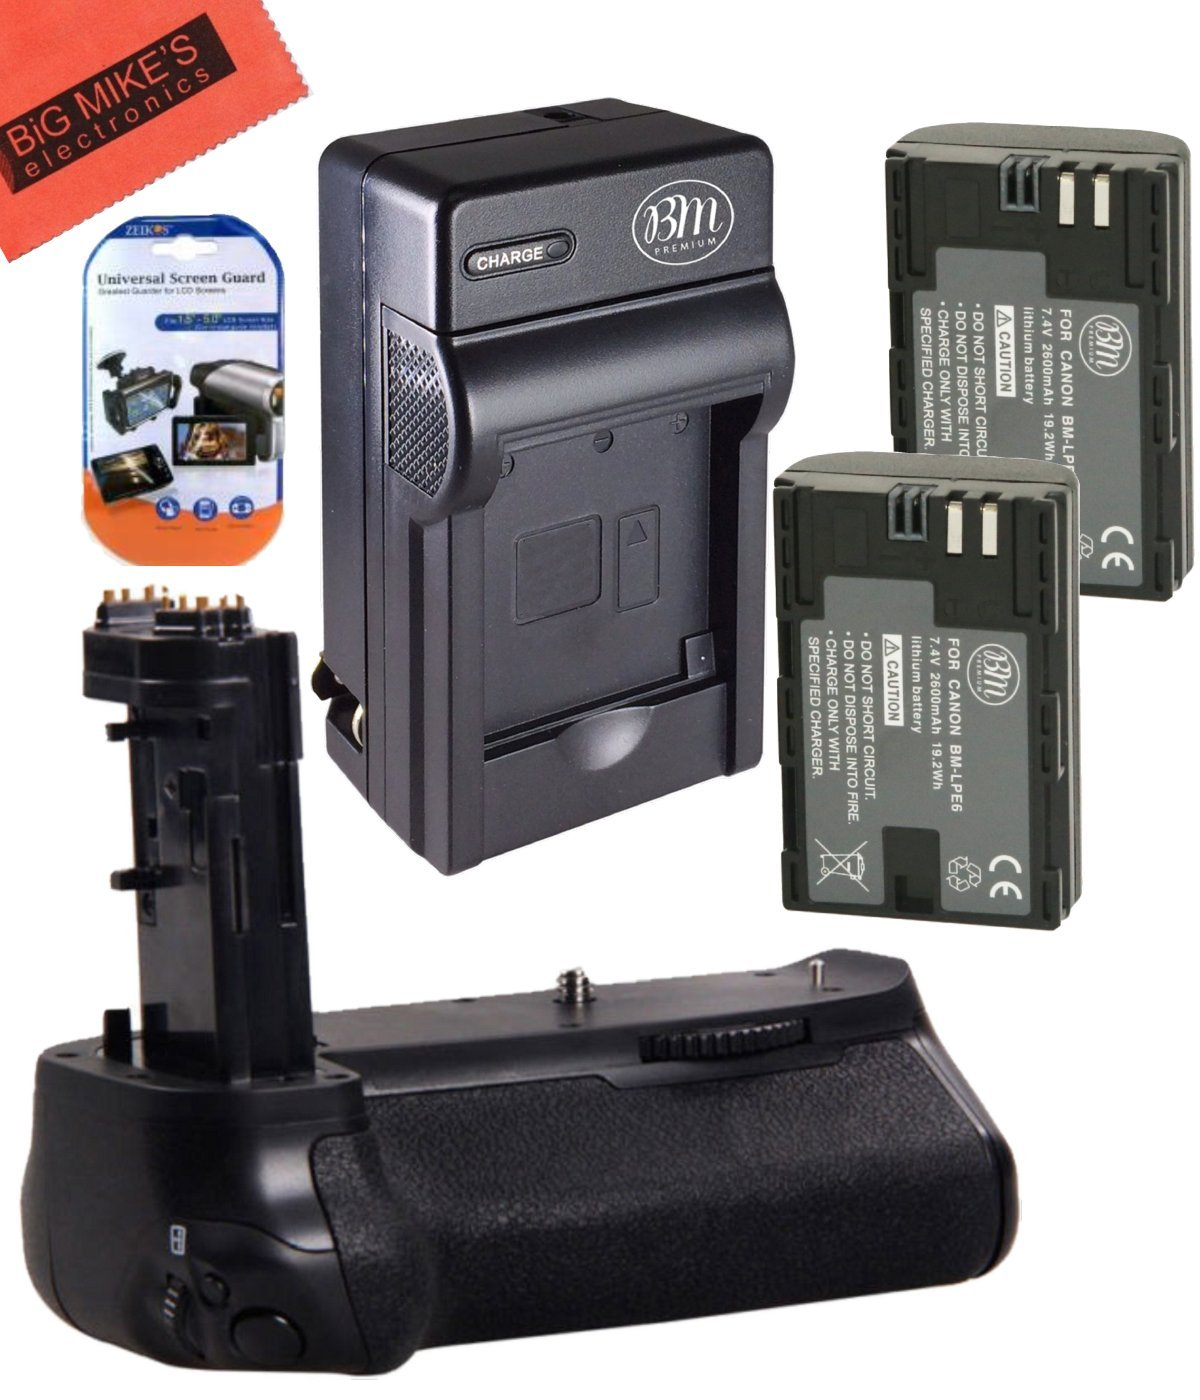 Battery Grip Kit for Canon EOS 7D Mark II Digital SLR Camera Includes Qty 2 BM Premium LP-E6, LP-E6N Batteries + Battery Charger + Replacement BG-E16 Battery Grip by Big Mike's